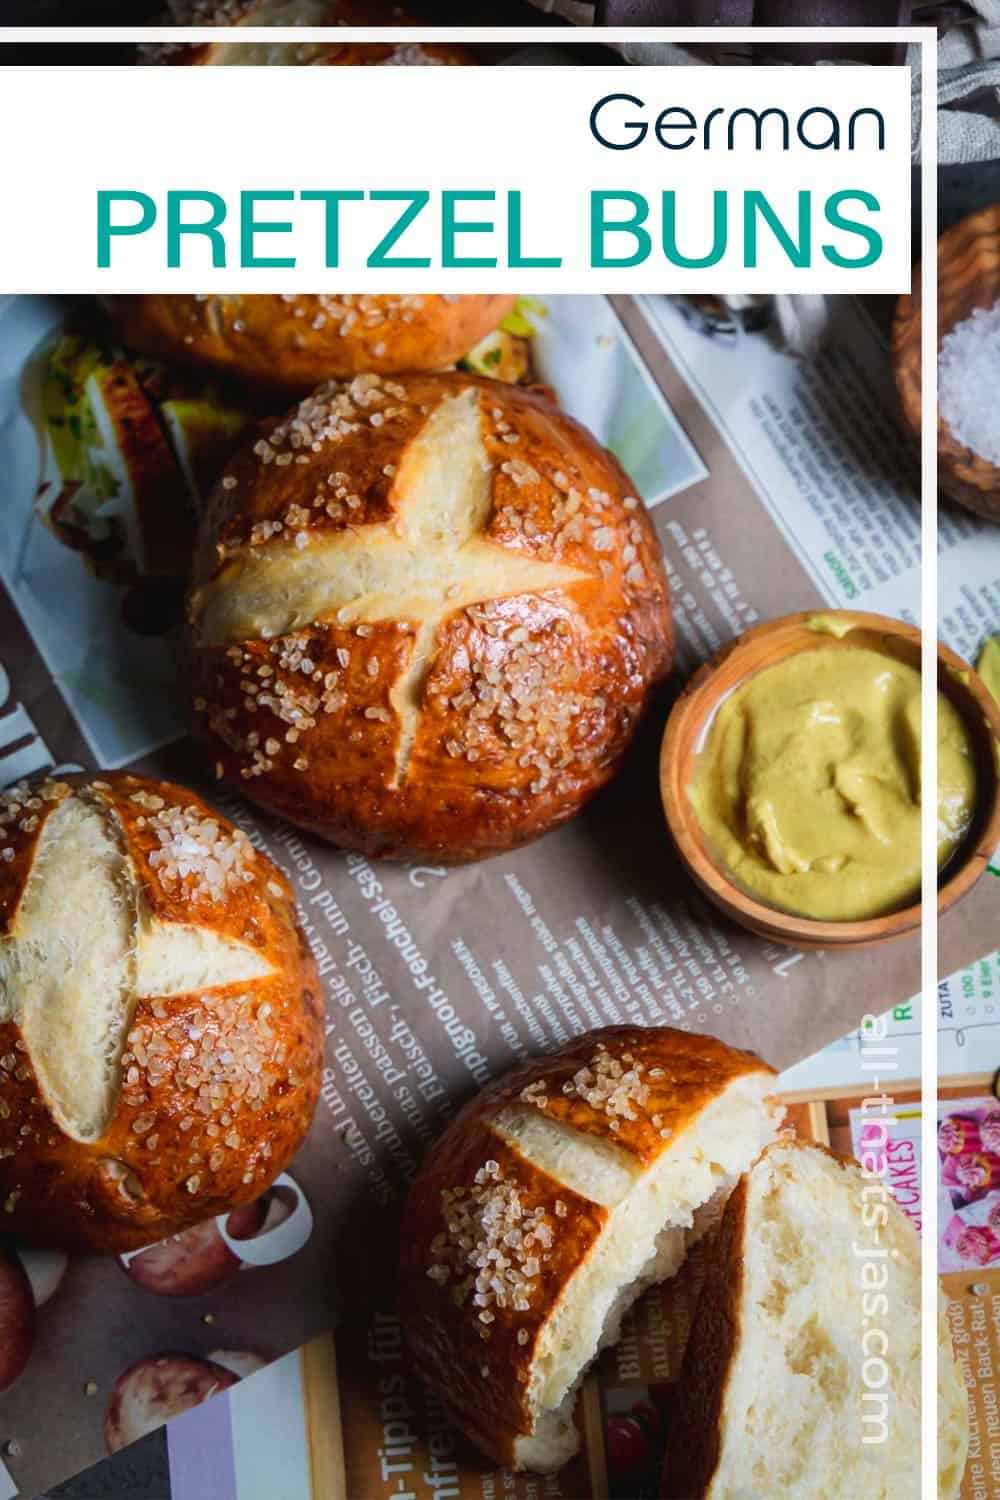 Pretzel rolls on spread on German magazine with mustard and text overlay.